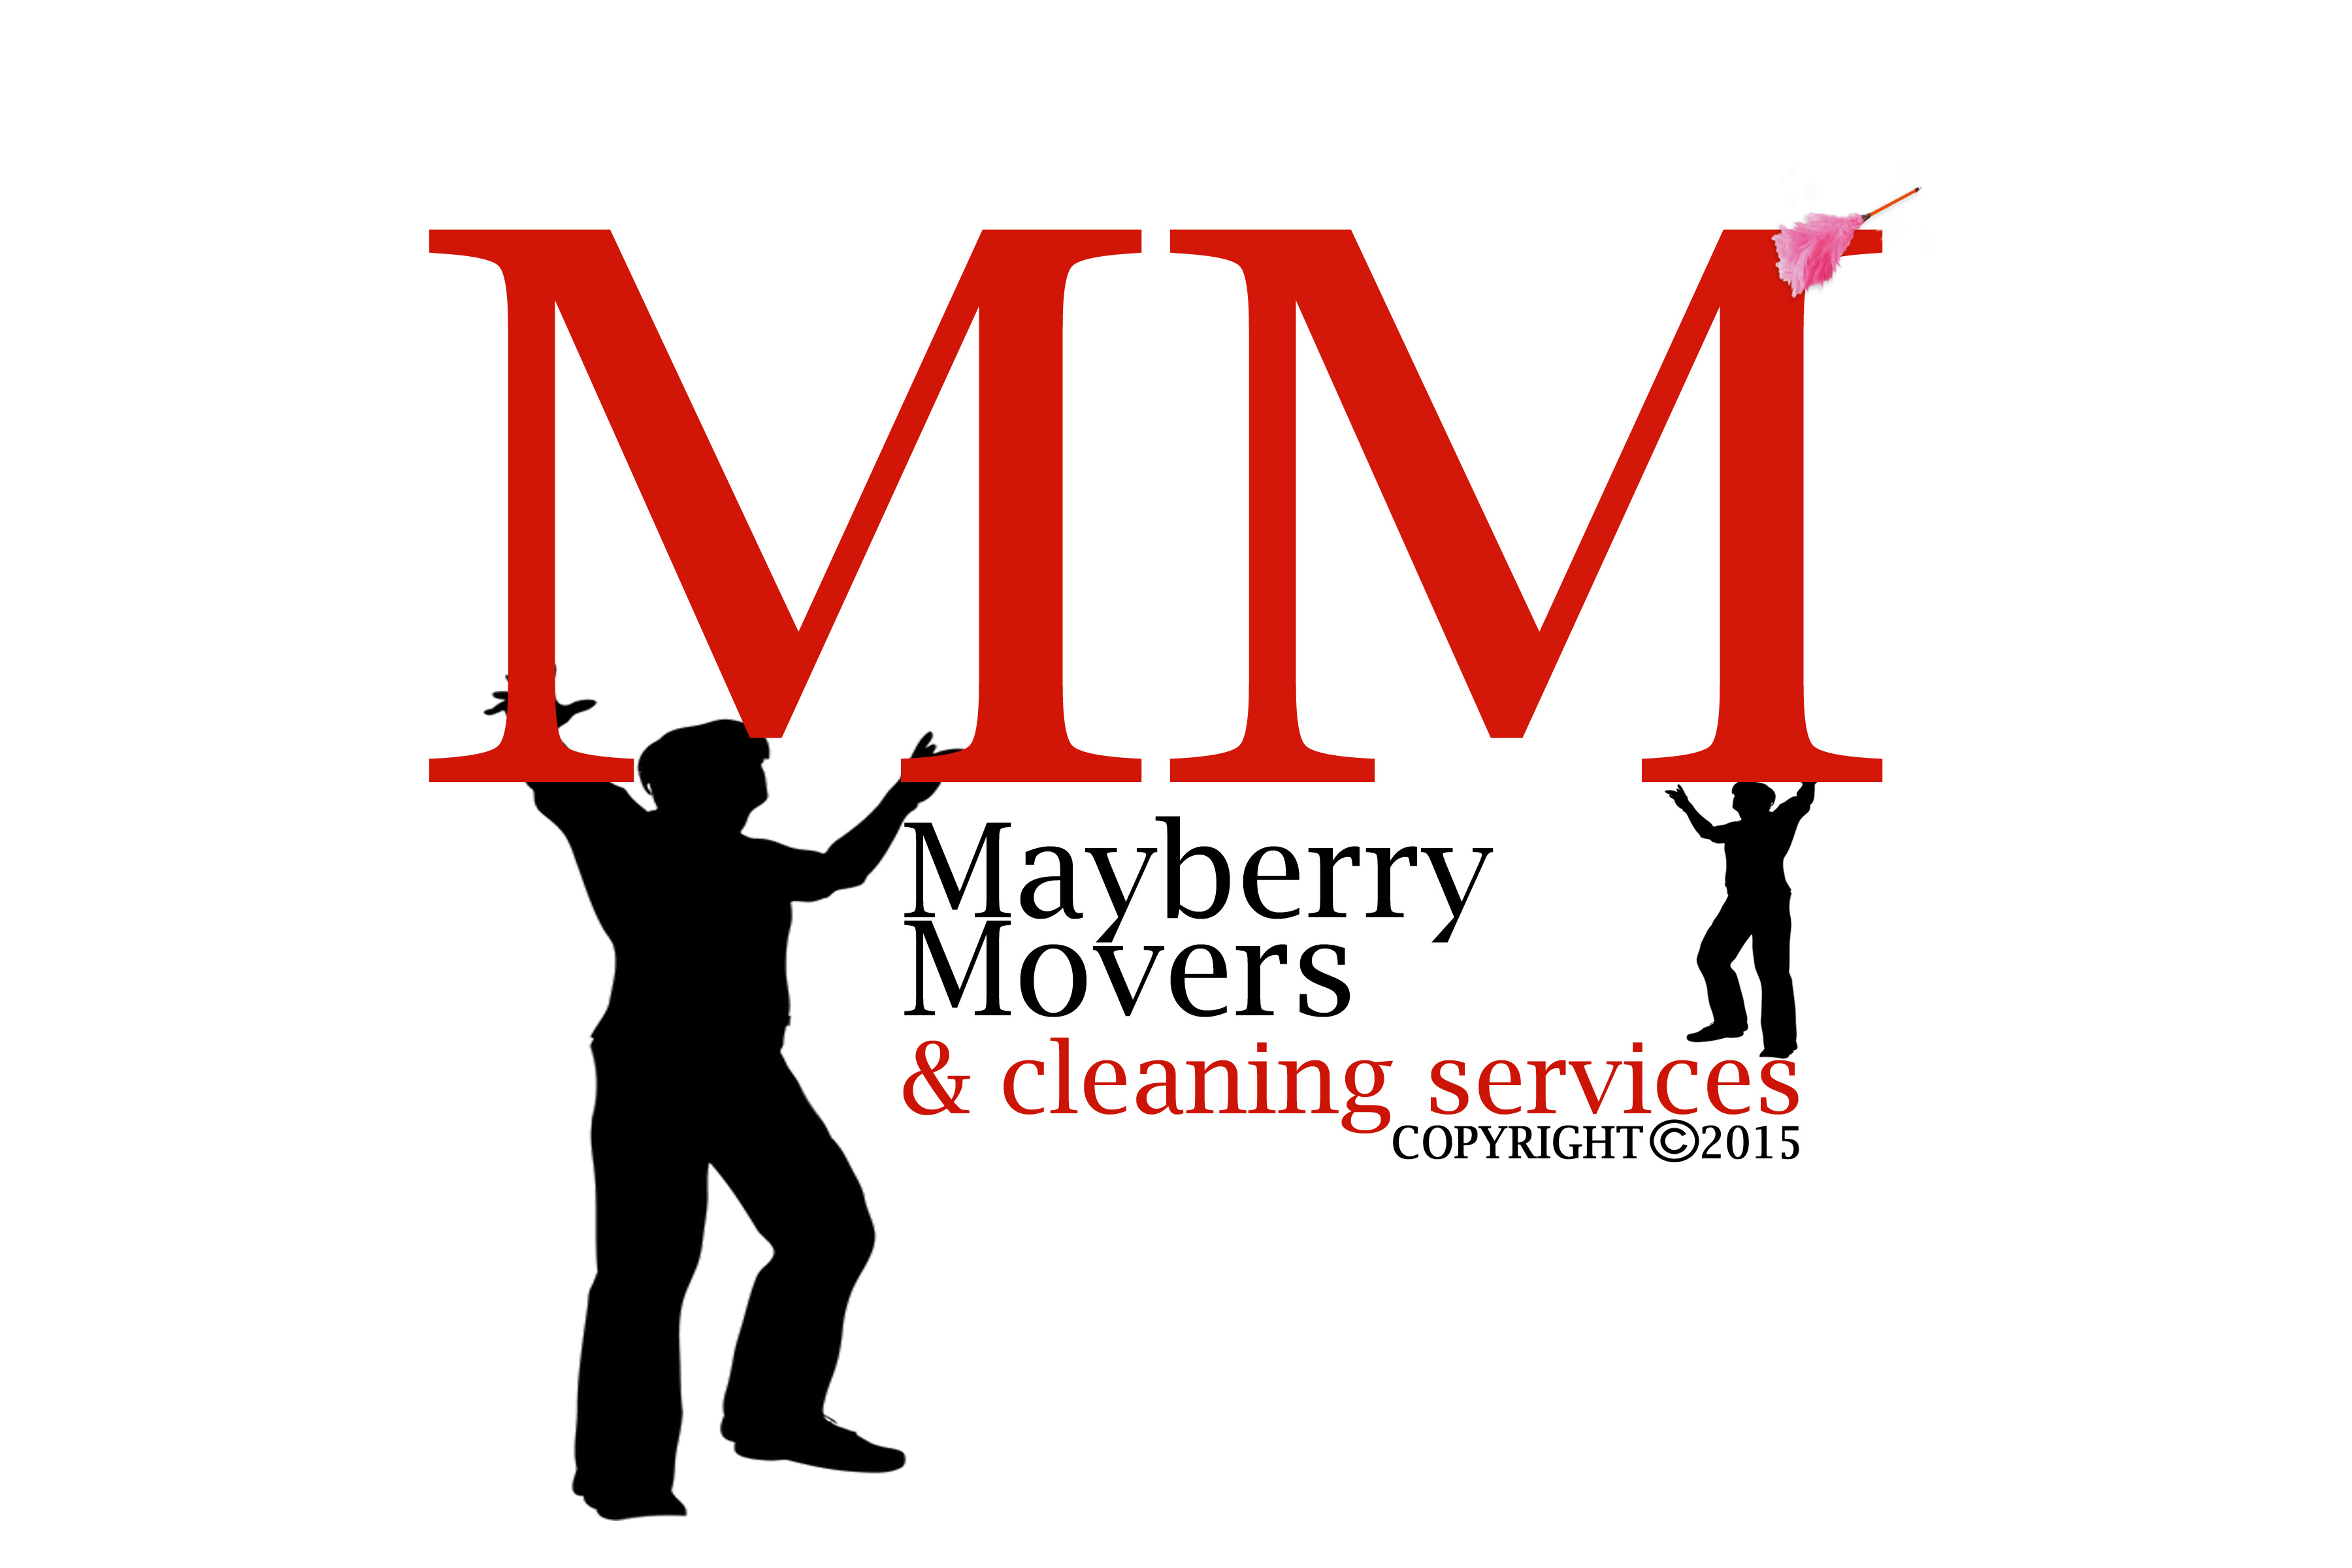 Mayberry Movers and Cleaning Services